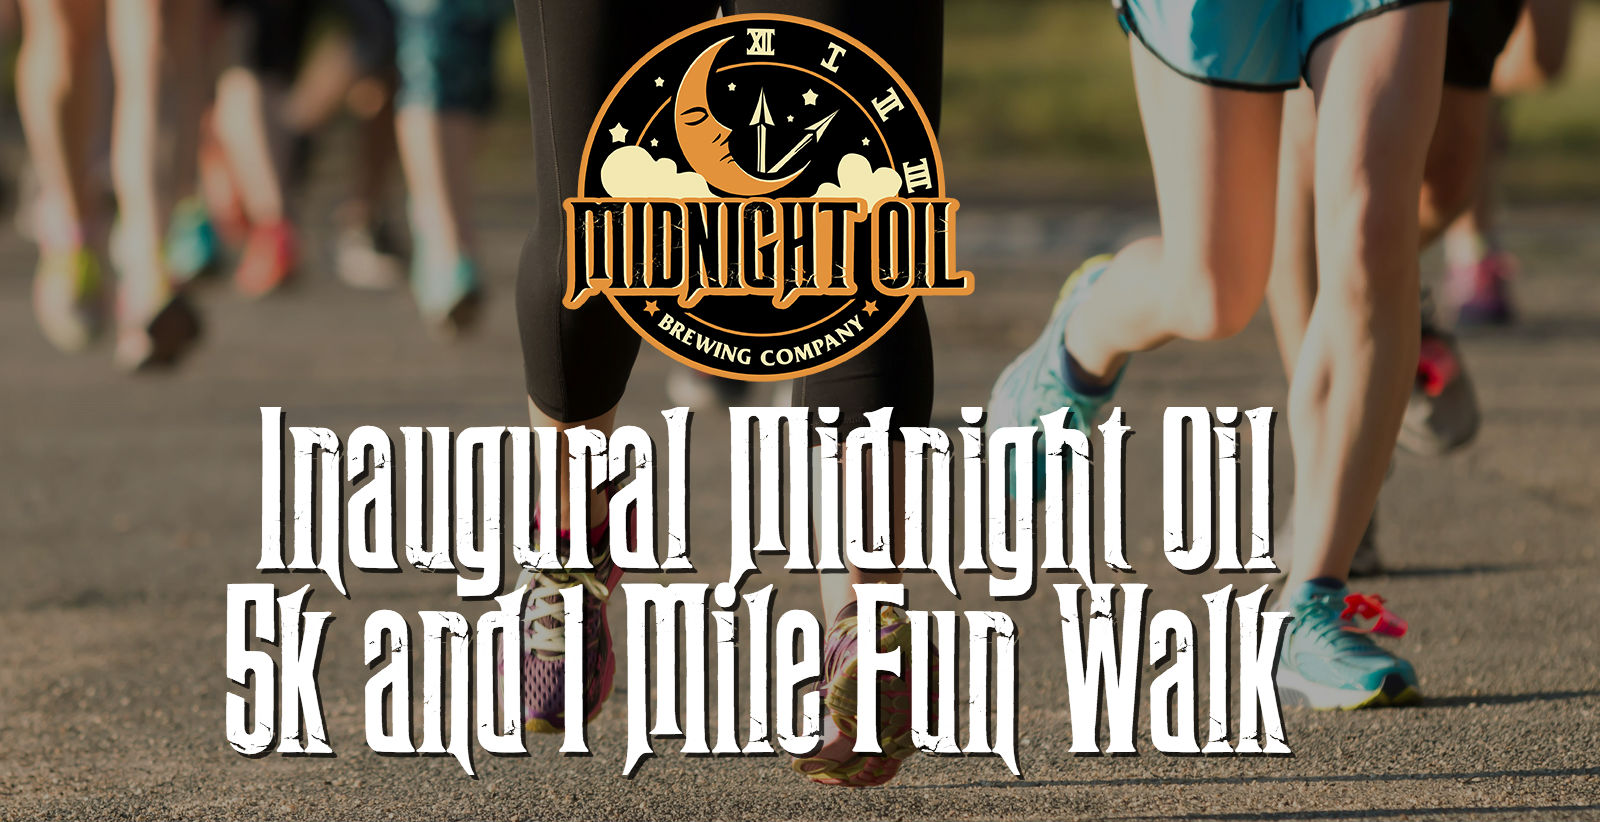 Midnight Oil 5k and 1 Mile Fun Walk